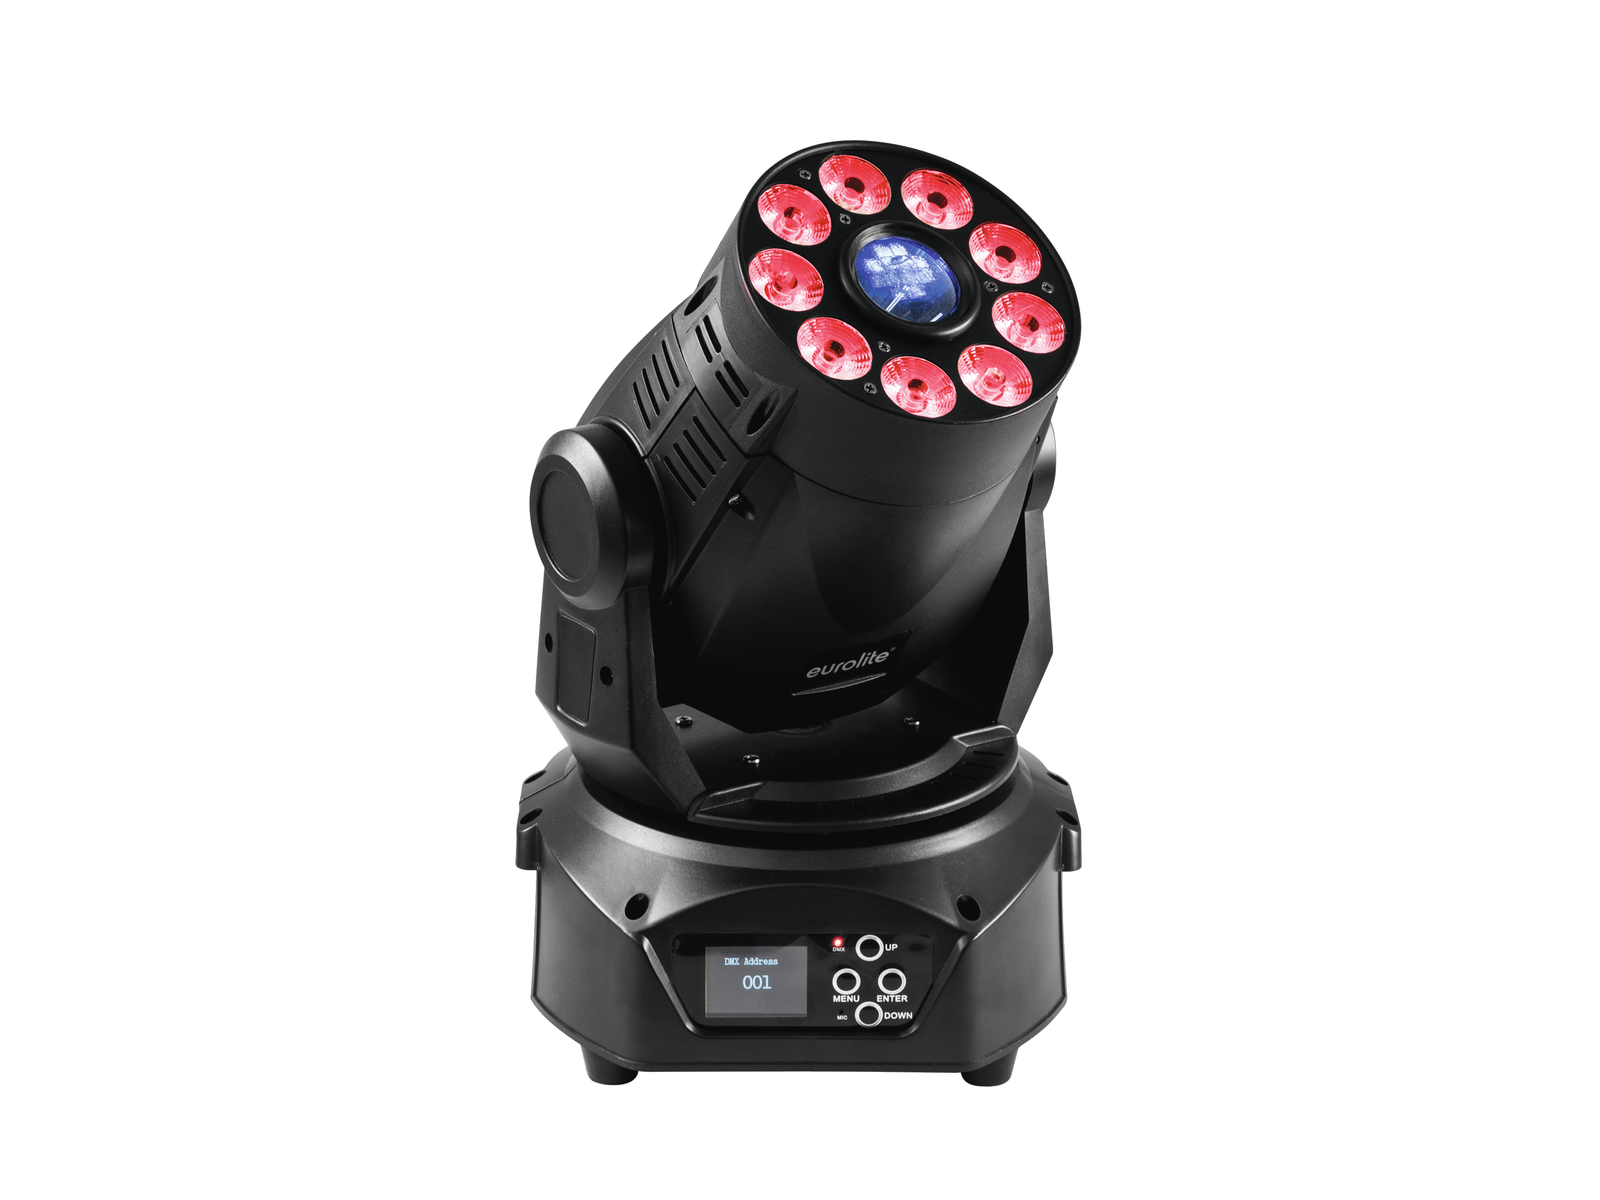 EUROLITE LED TMH-75 Ibrido Moving-Head Spot/Lavaggio COB